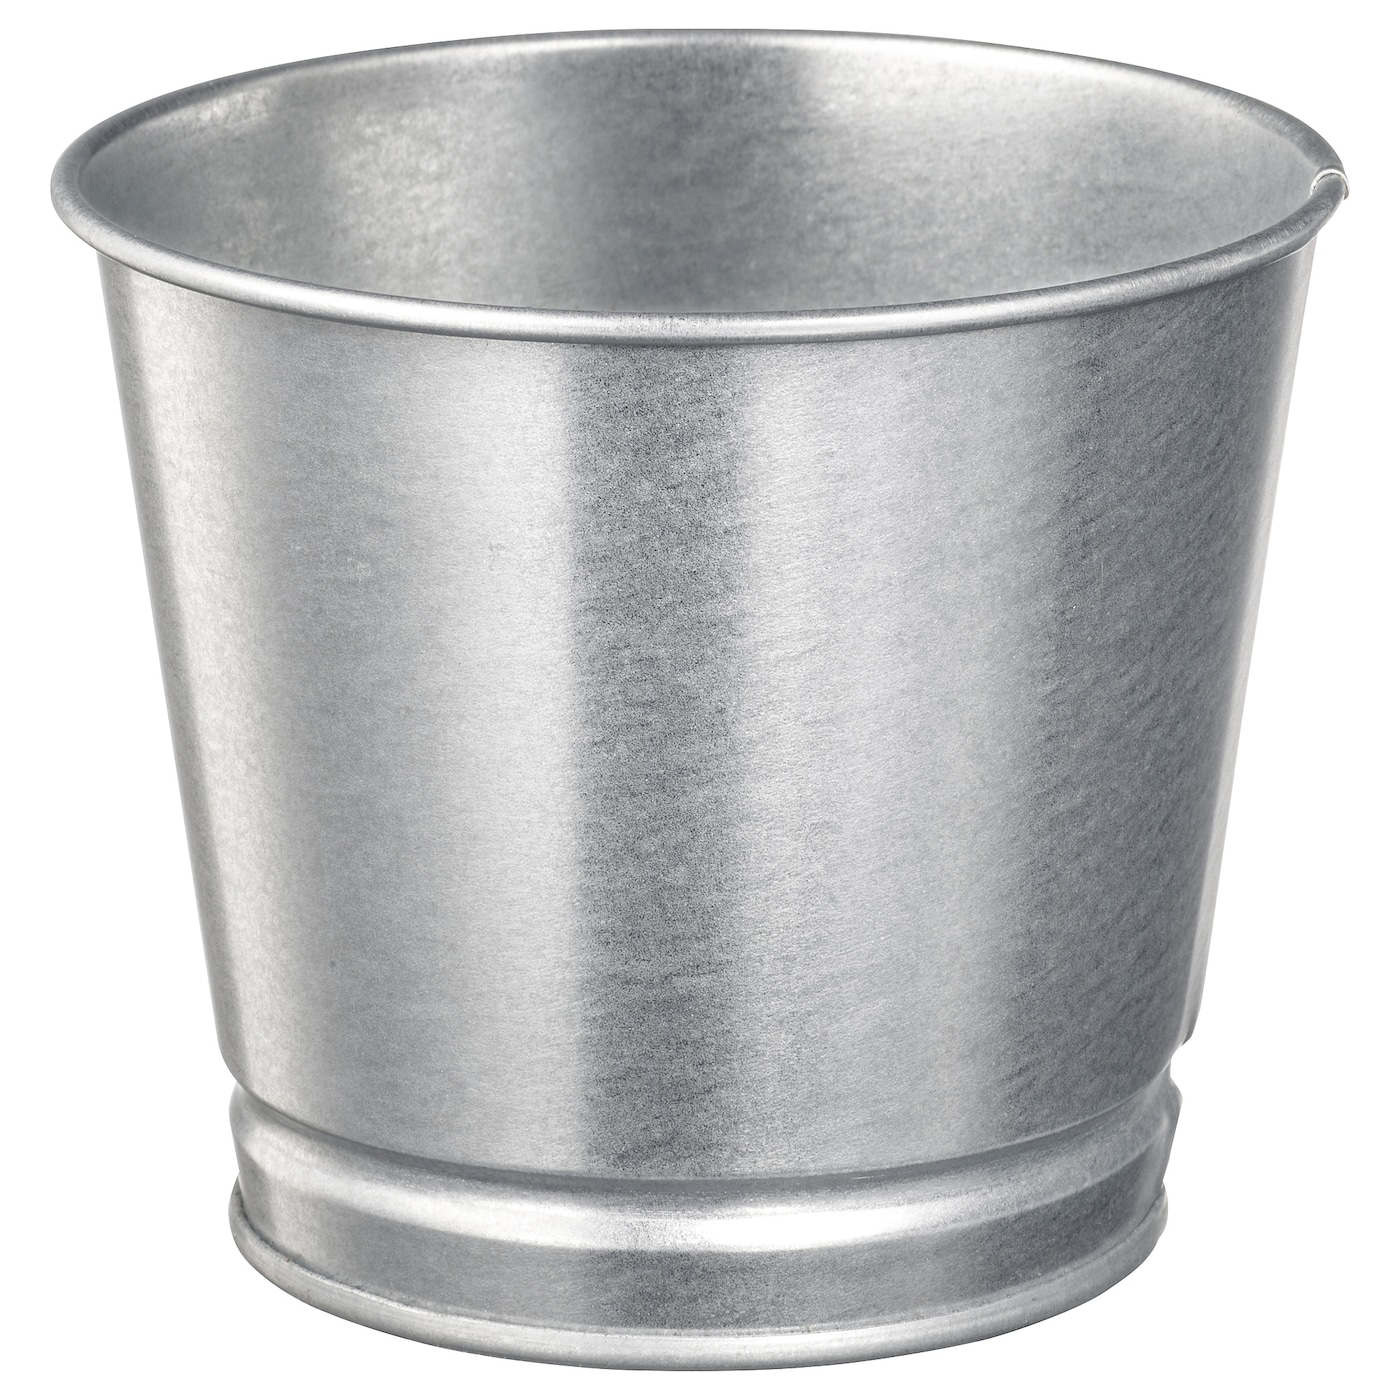 IKEA BINTJE plant pot The plant pot is galvanised to protect against corrosion.